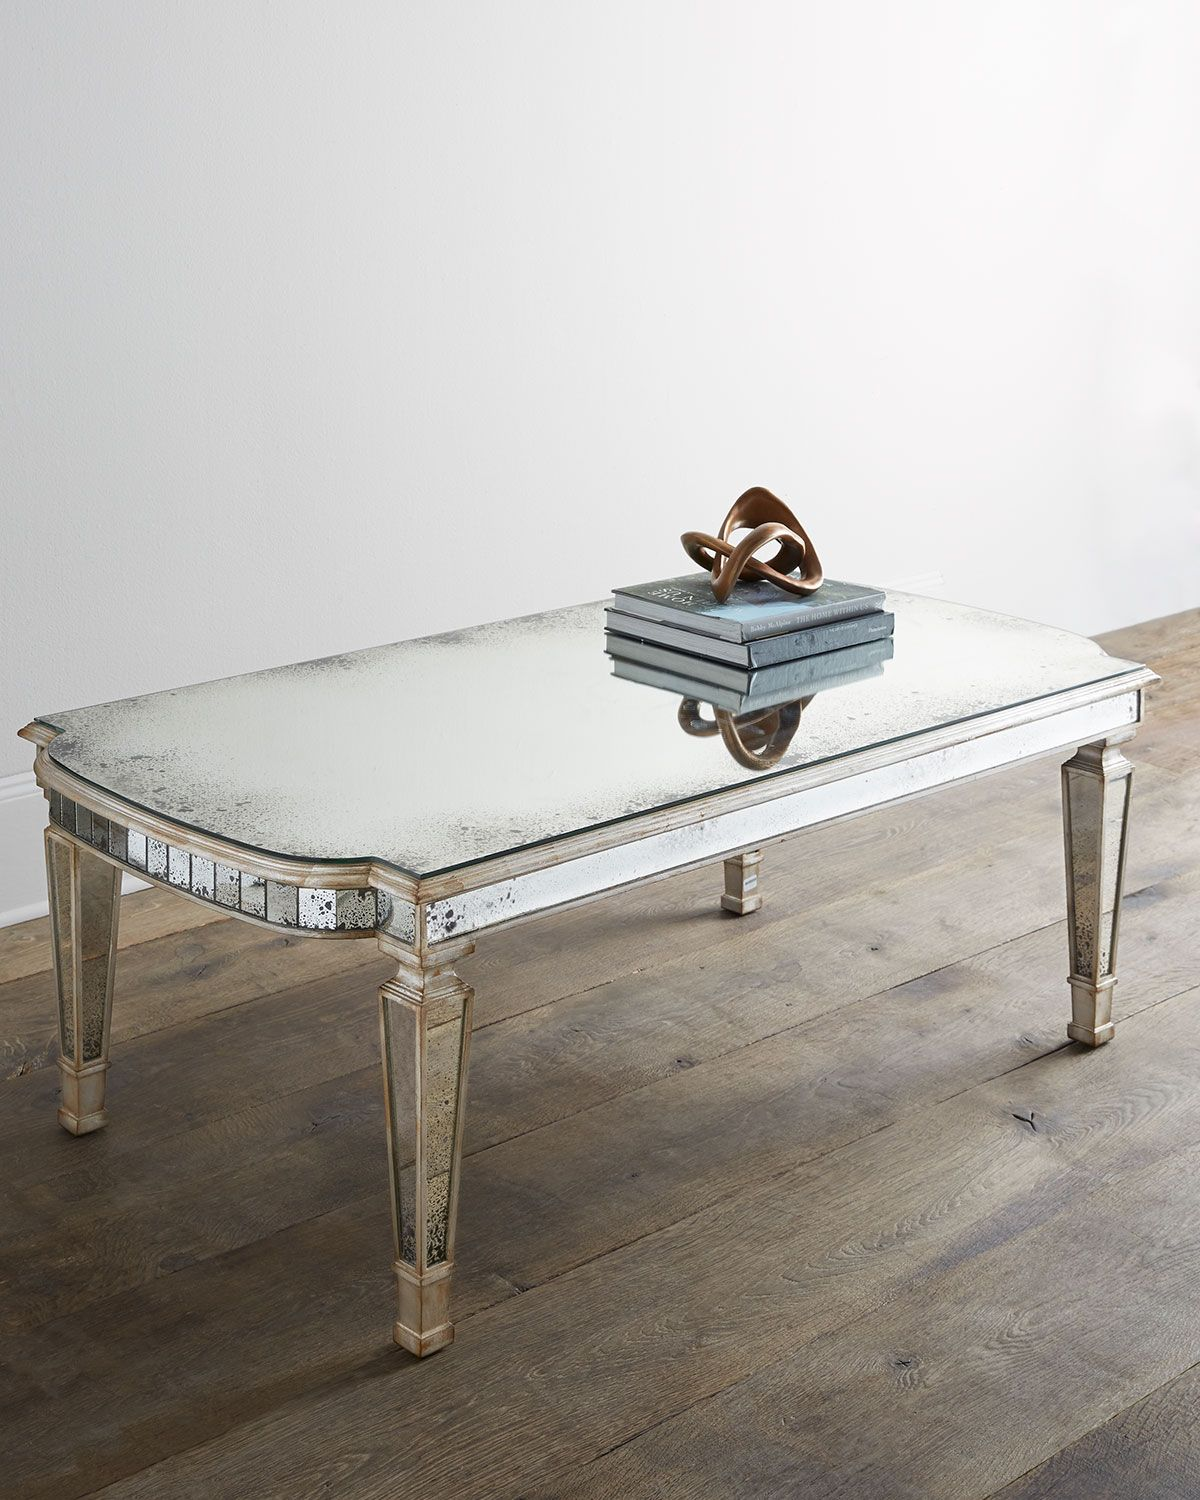 dara mirrored coffee table mirror silver ant john richard accent tables with matching mirrors collection small square modern dressing circle chair target nautical track lighting